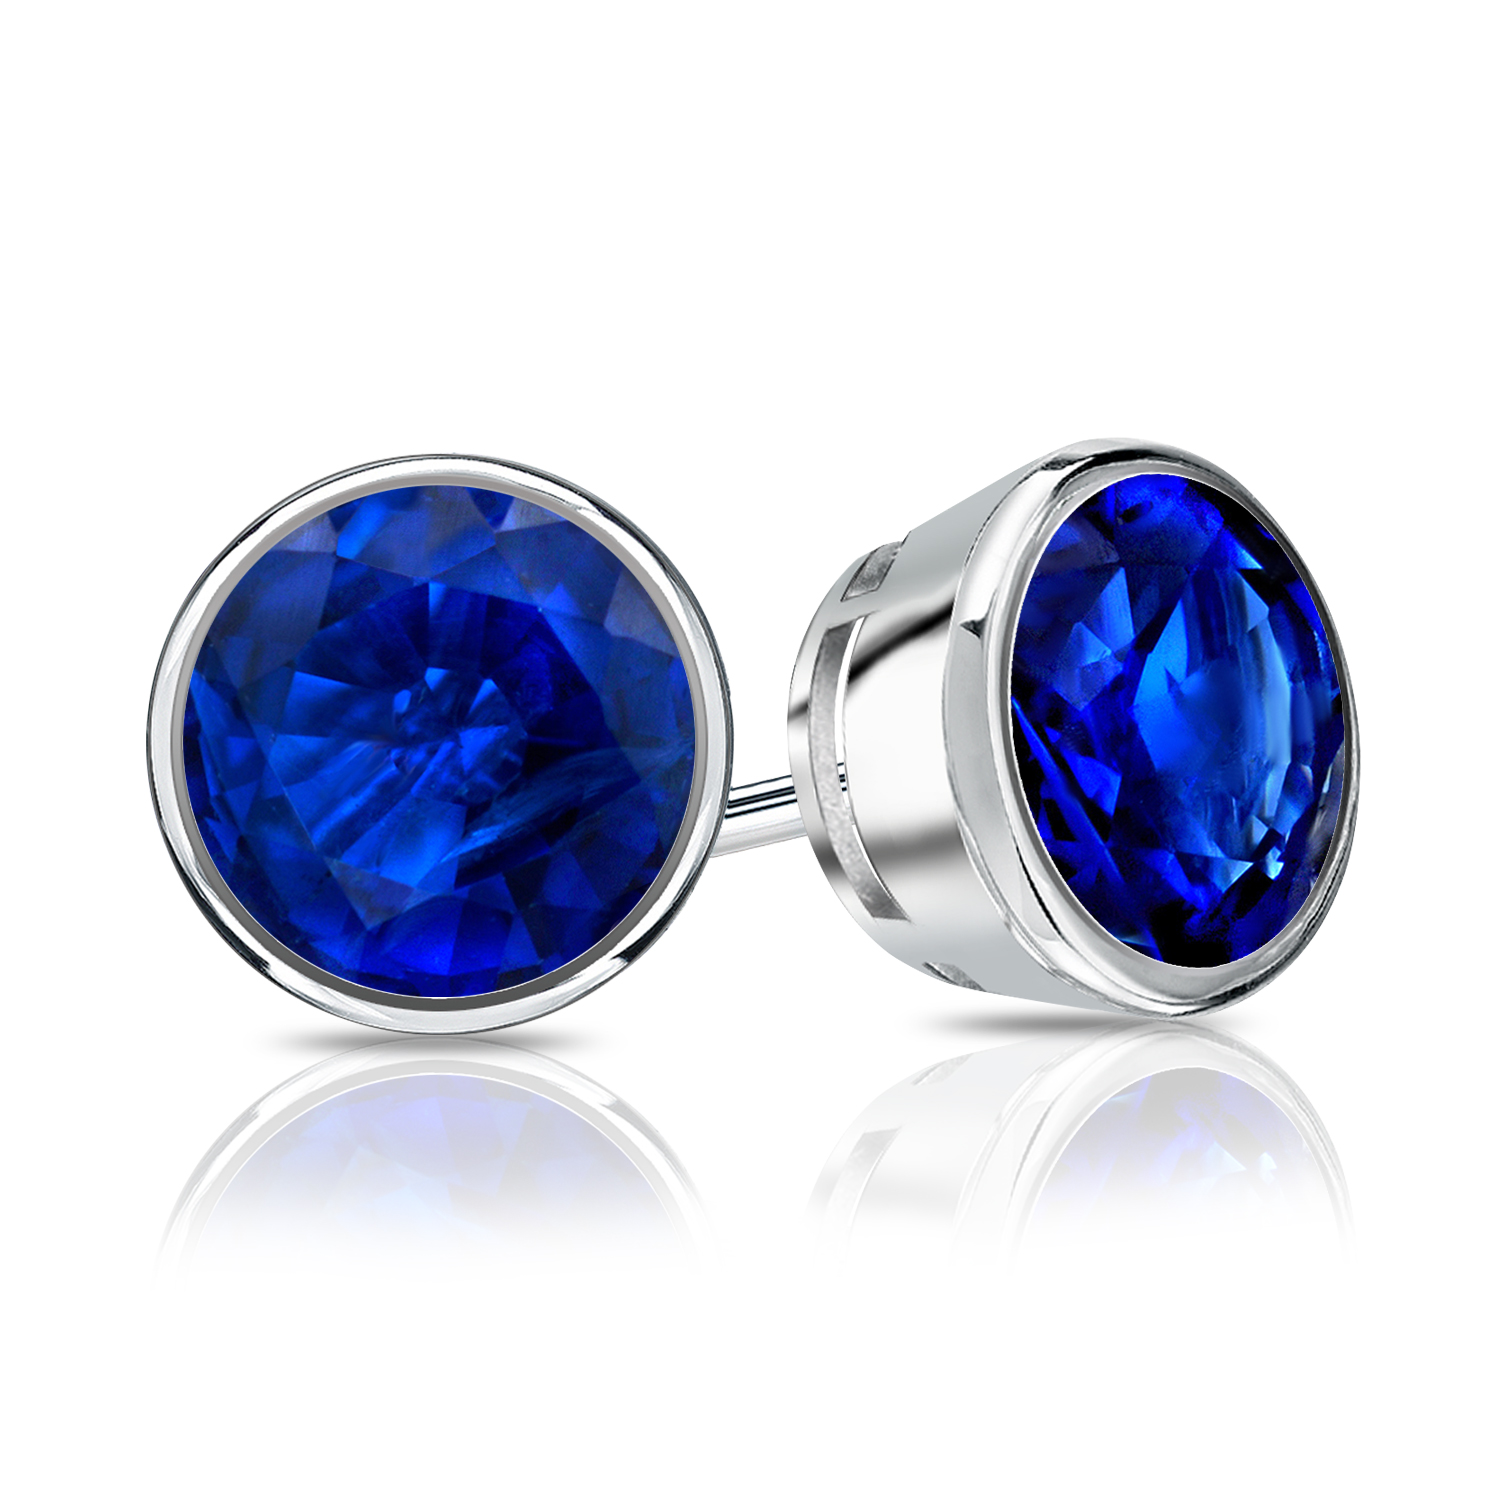 Certified 0.25 cttw Round Blue Sapphire Gemstone Stud Earrings in 14k White Gold Bezel (Blue, AAA)